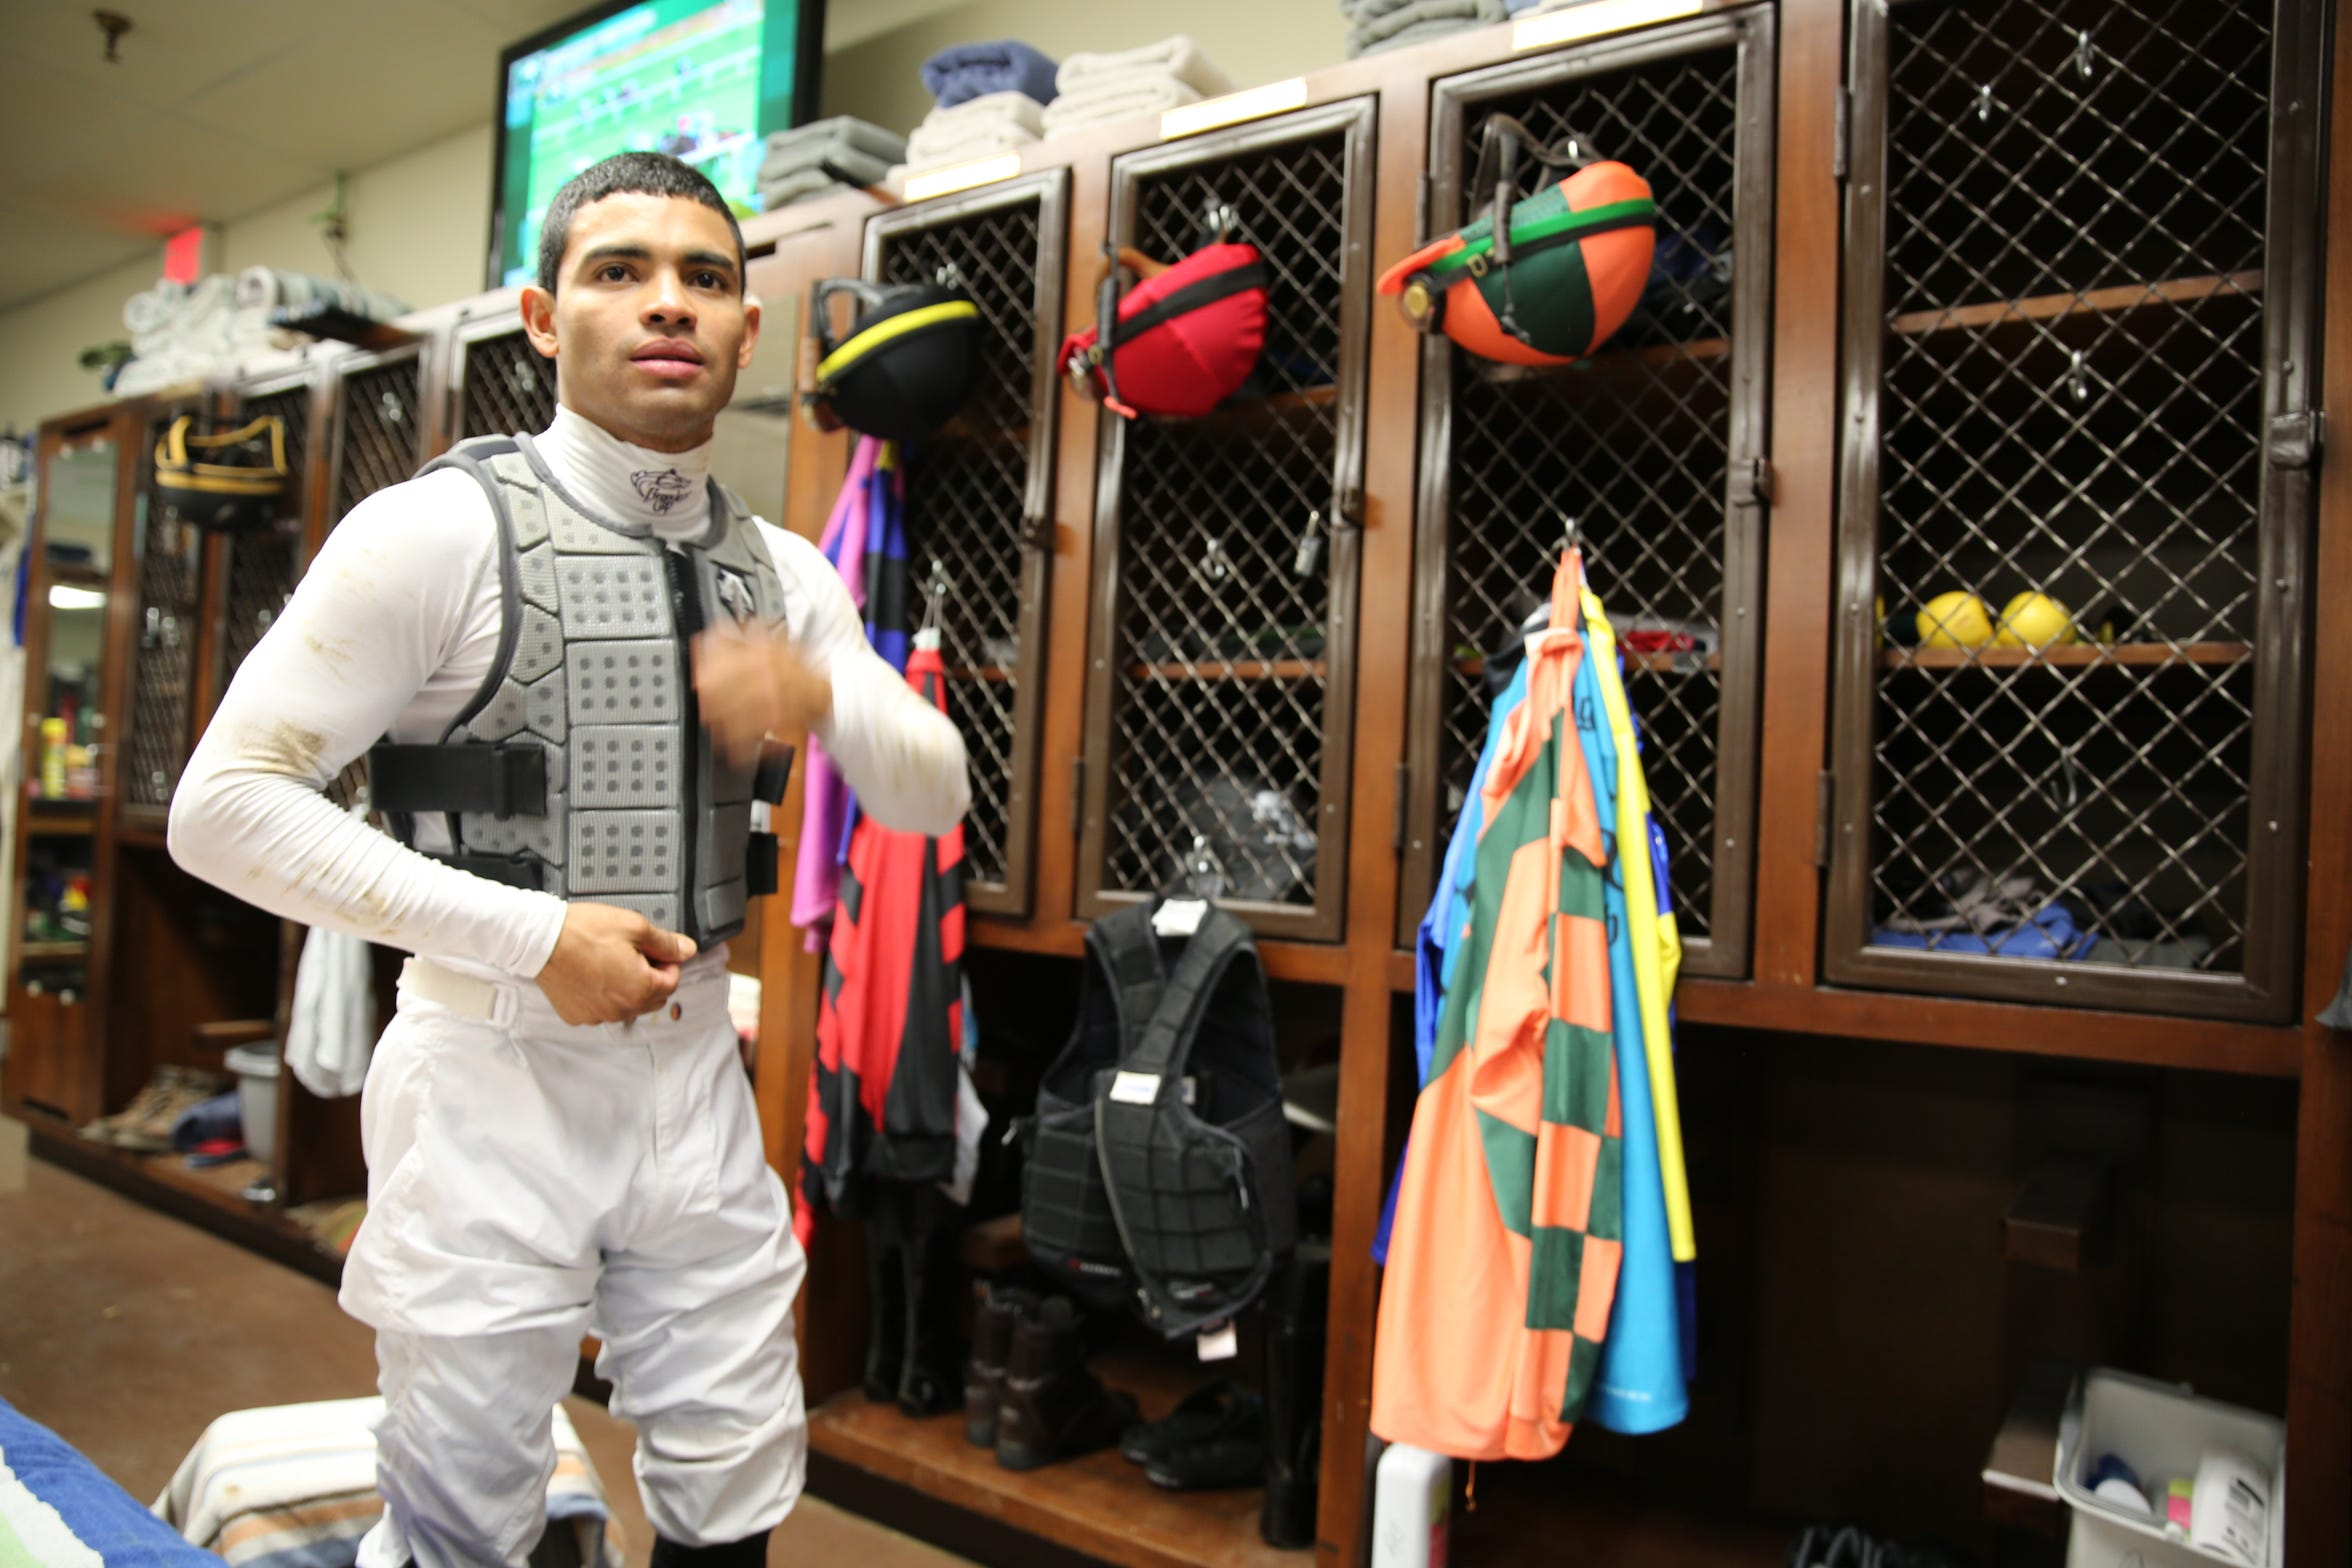 Top thoroughbred racing jockey Luis Saez, who is from Panama and graduated from its jockey school, is expected to race in this year's Kentucky Derby.